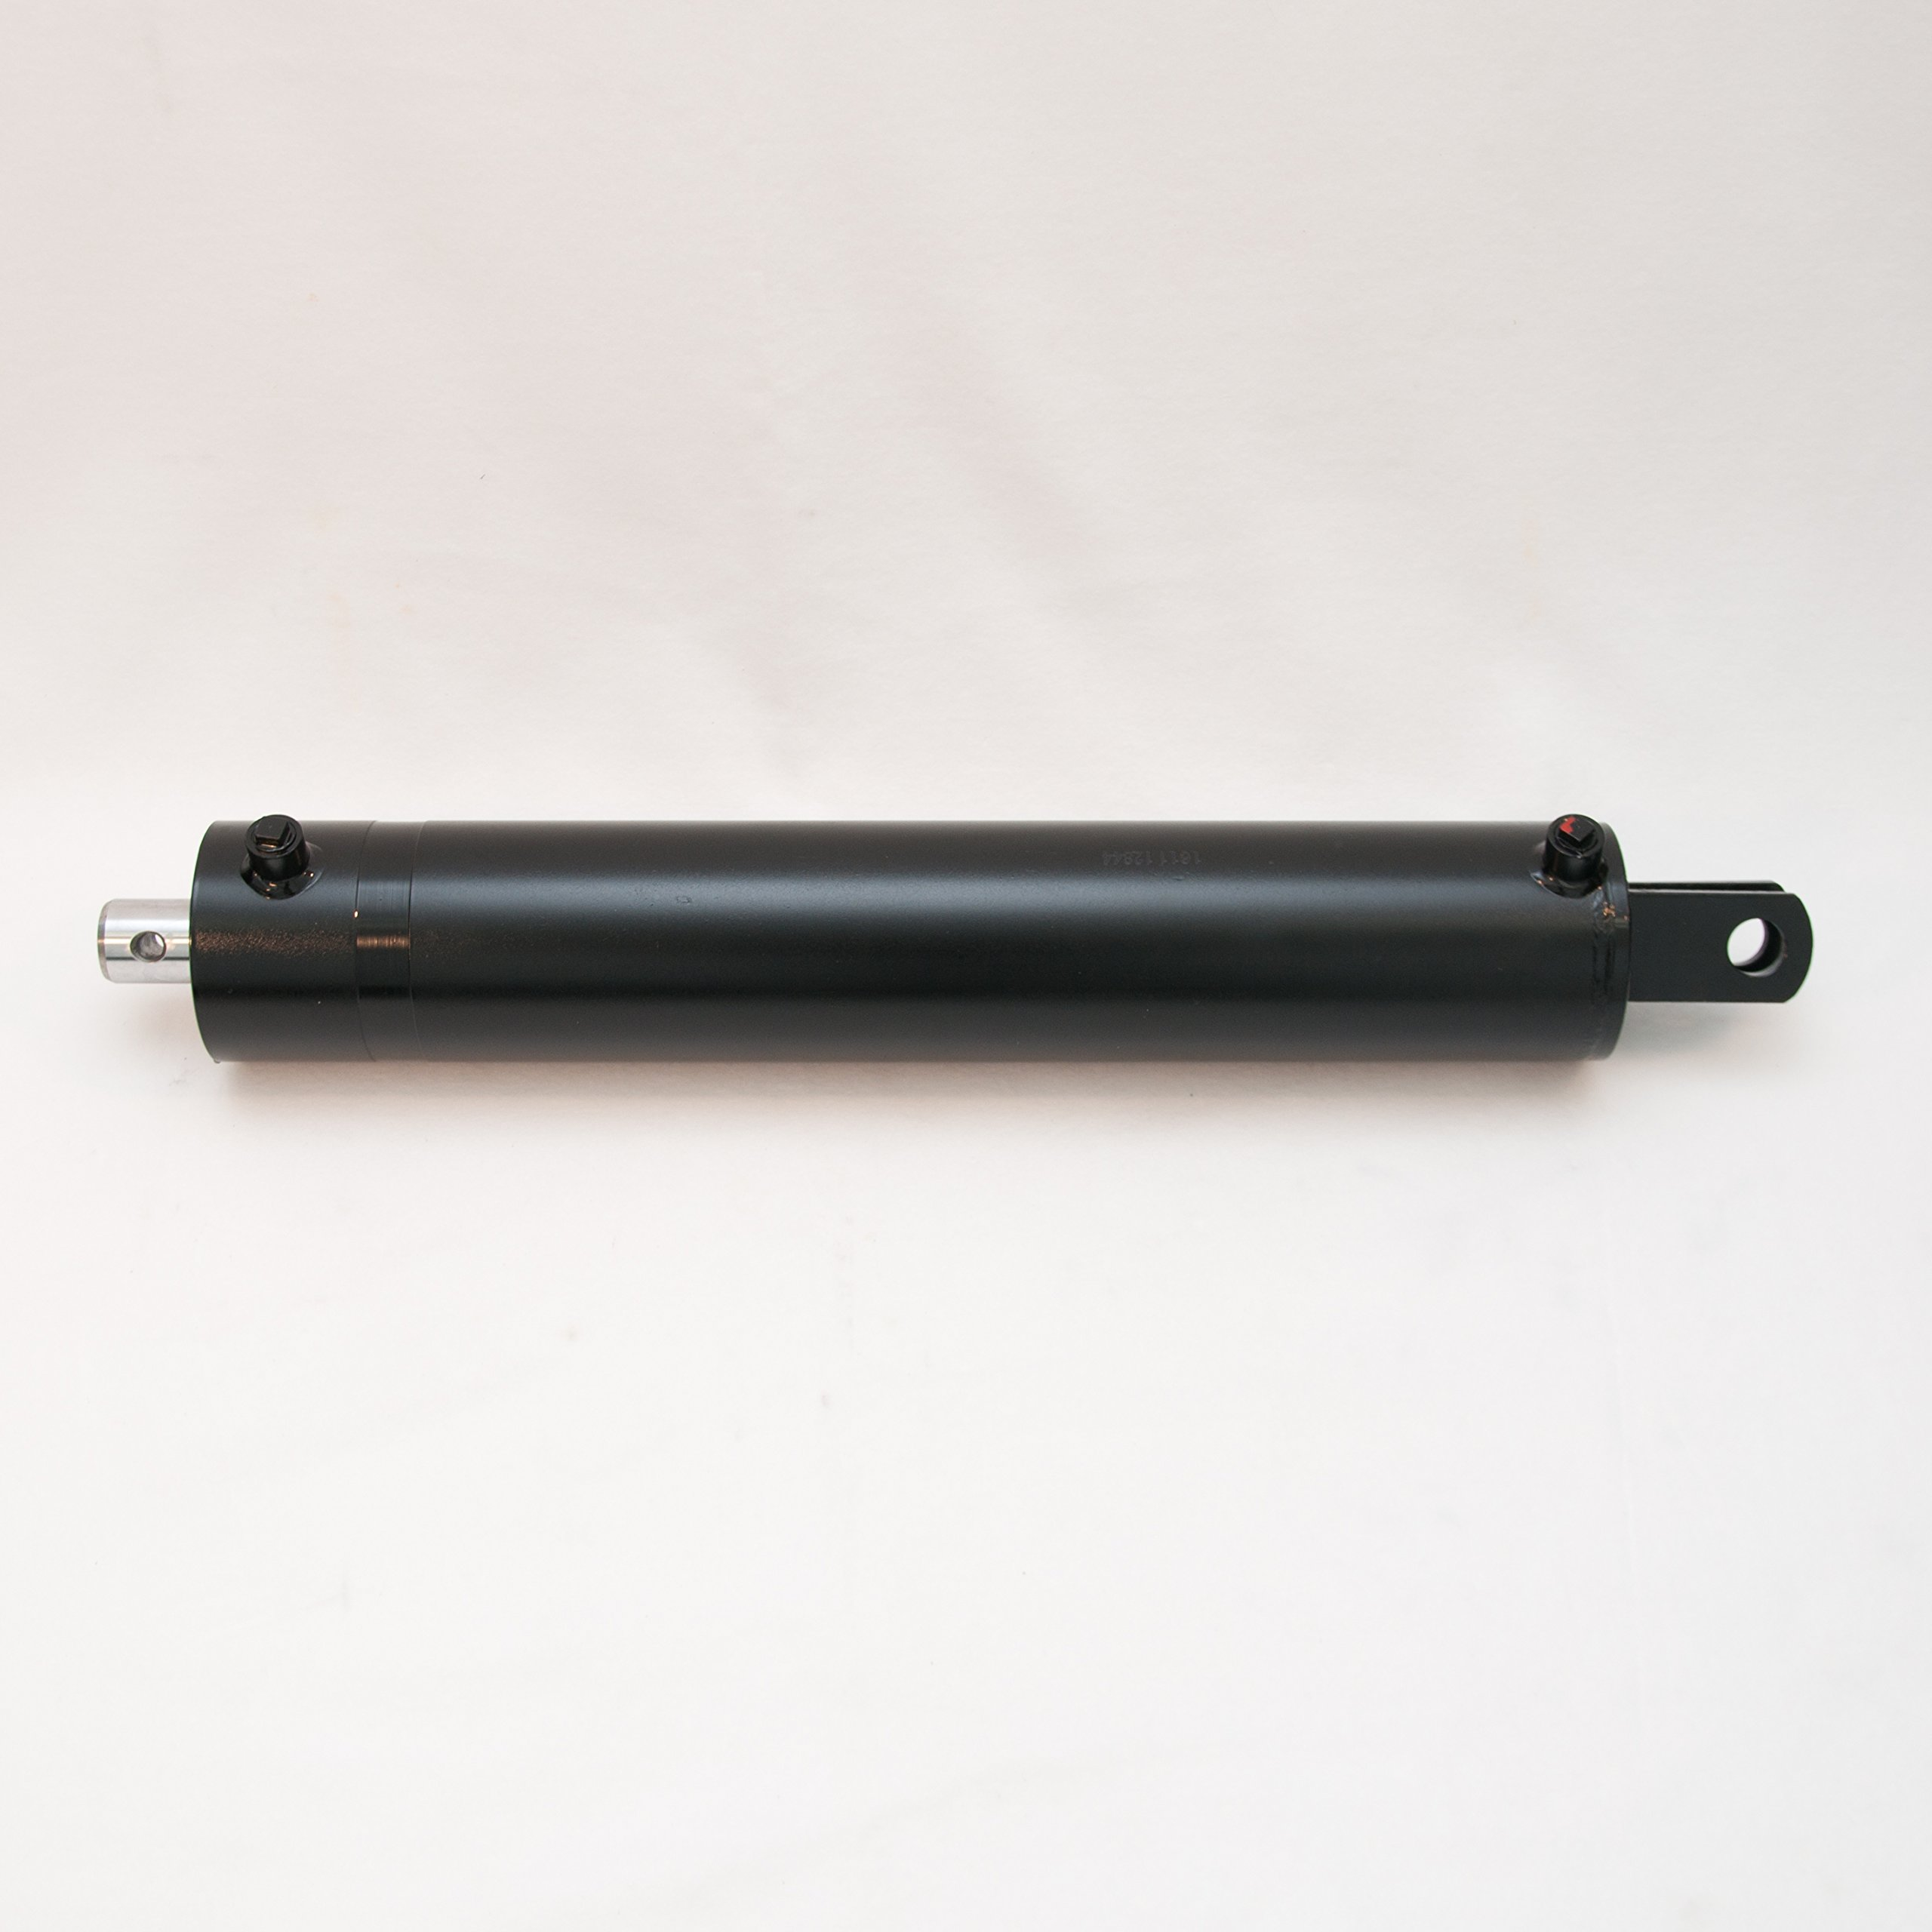 4.5''x24'' Hydraulic Log Splitter Cylinder, 3500PSI, Double Acting by ToolTuff Direct (Image #7)